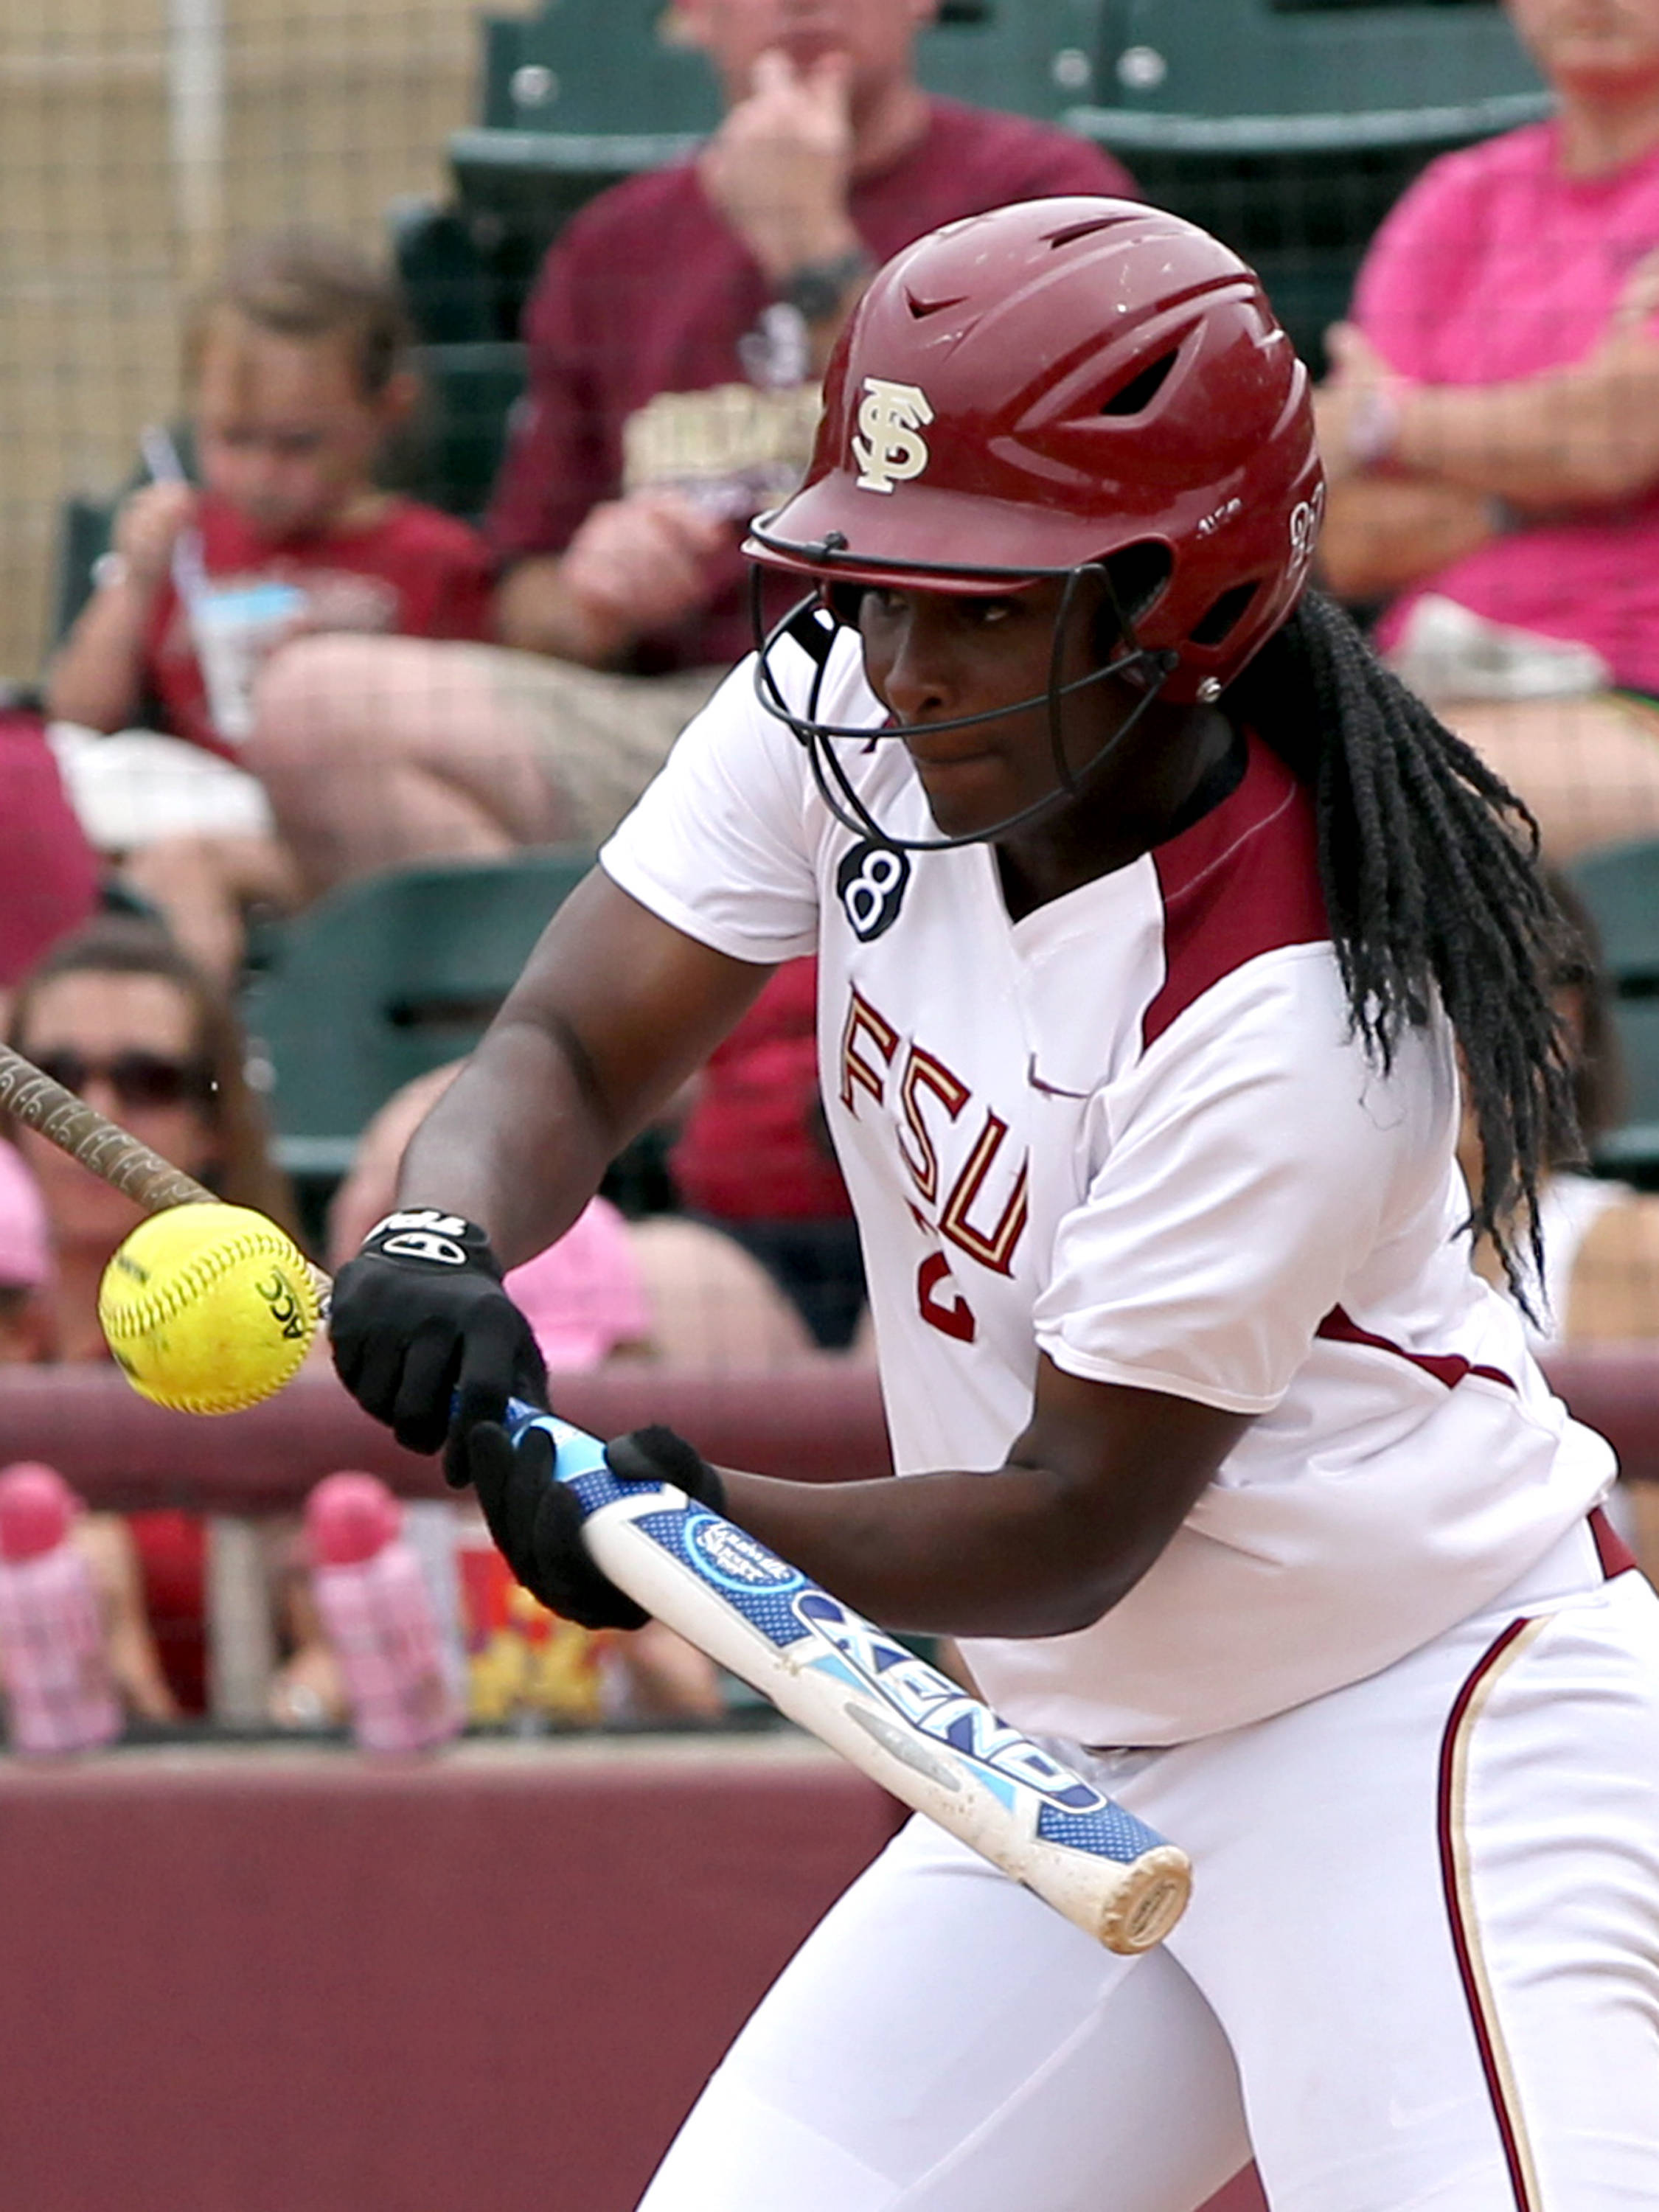 Morgan Bullock, FSU VS NC, ACC Championship Semifinals, Tallahassee, FL,  05/10/13 . (Photo by Steve Musco)